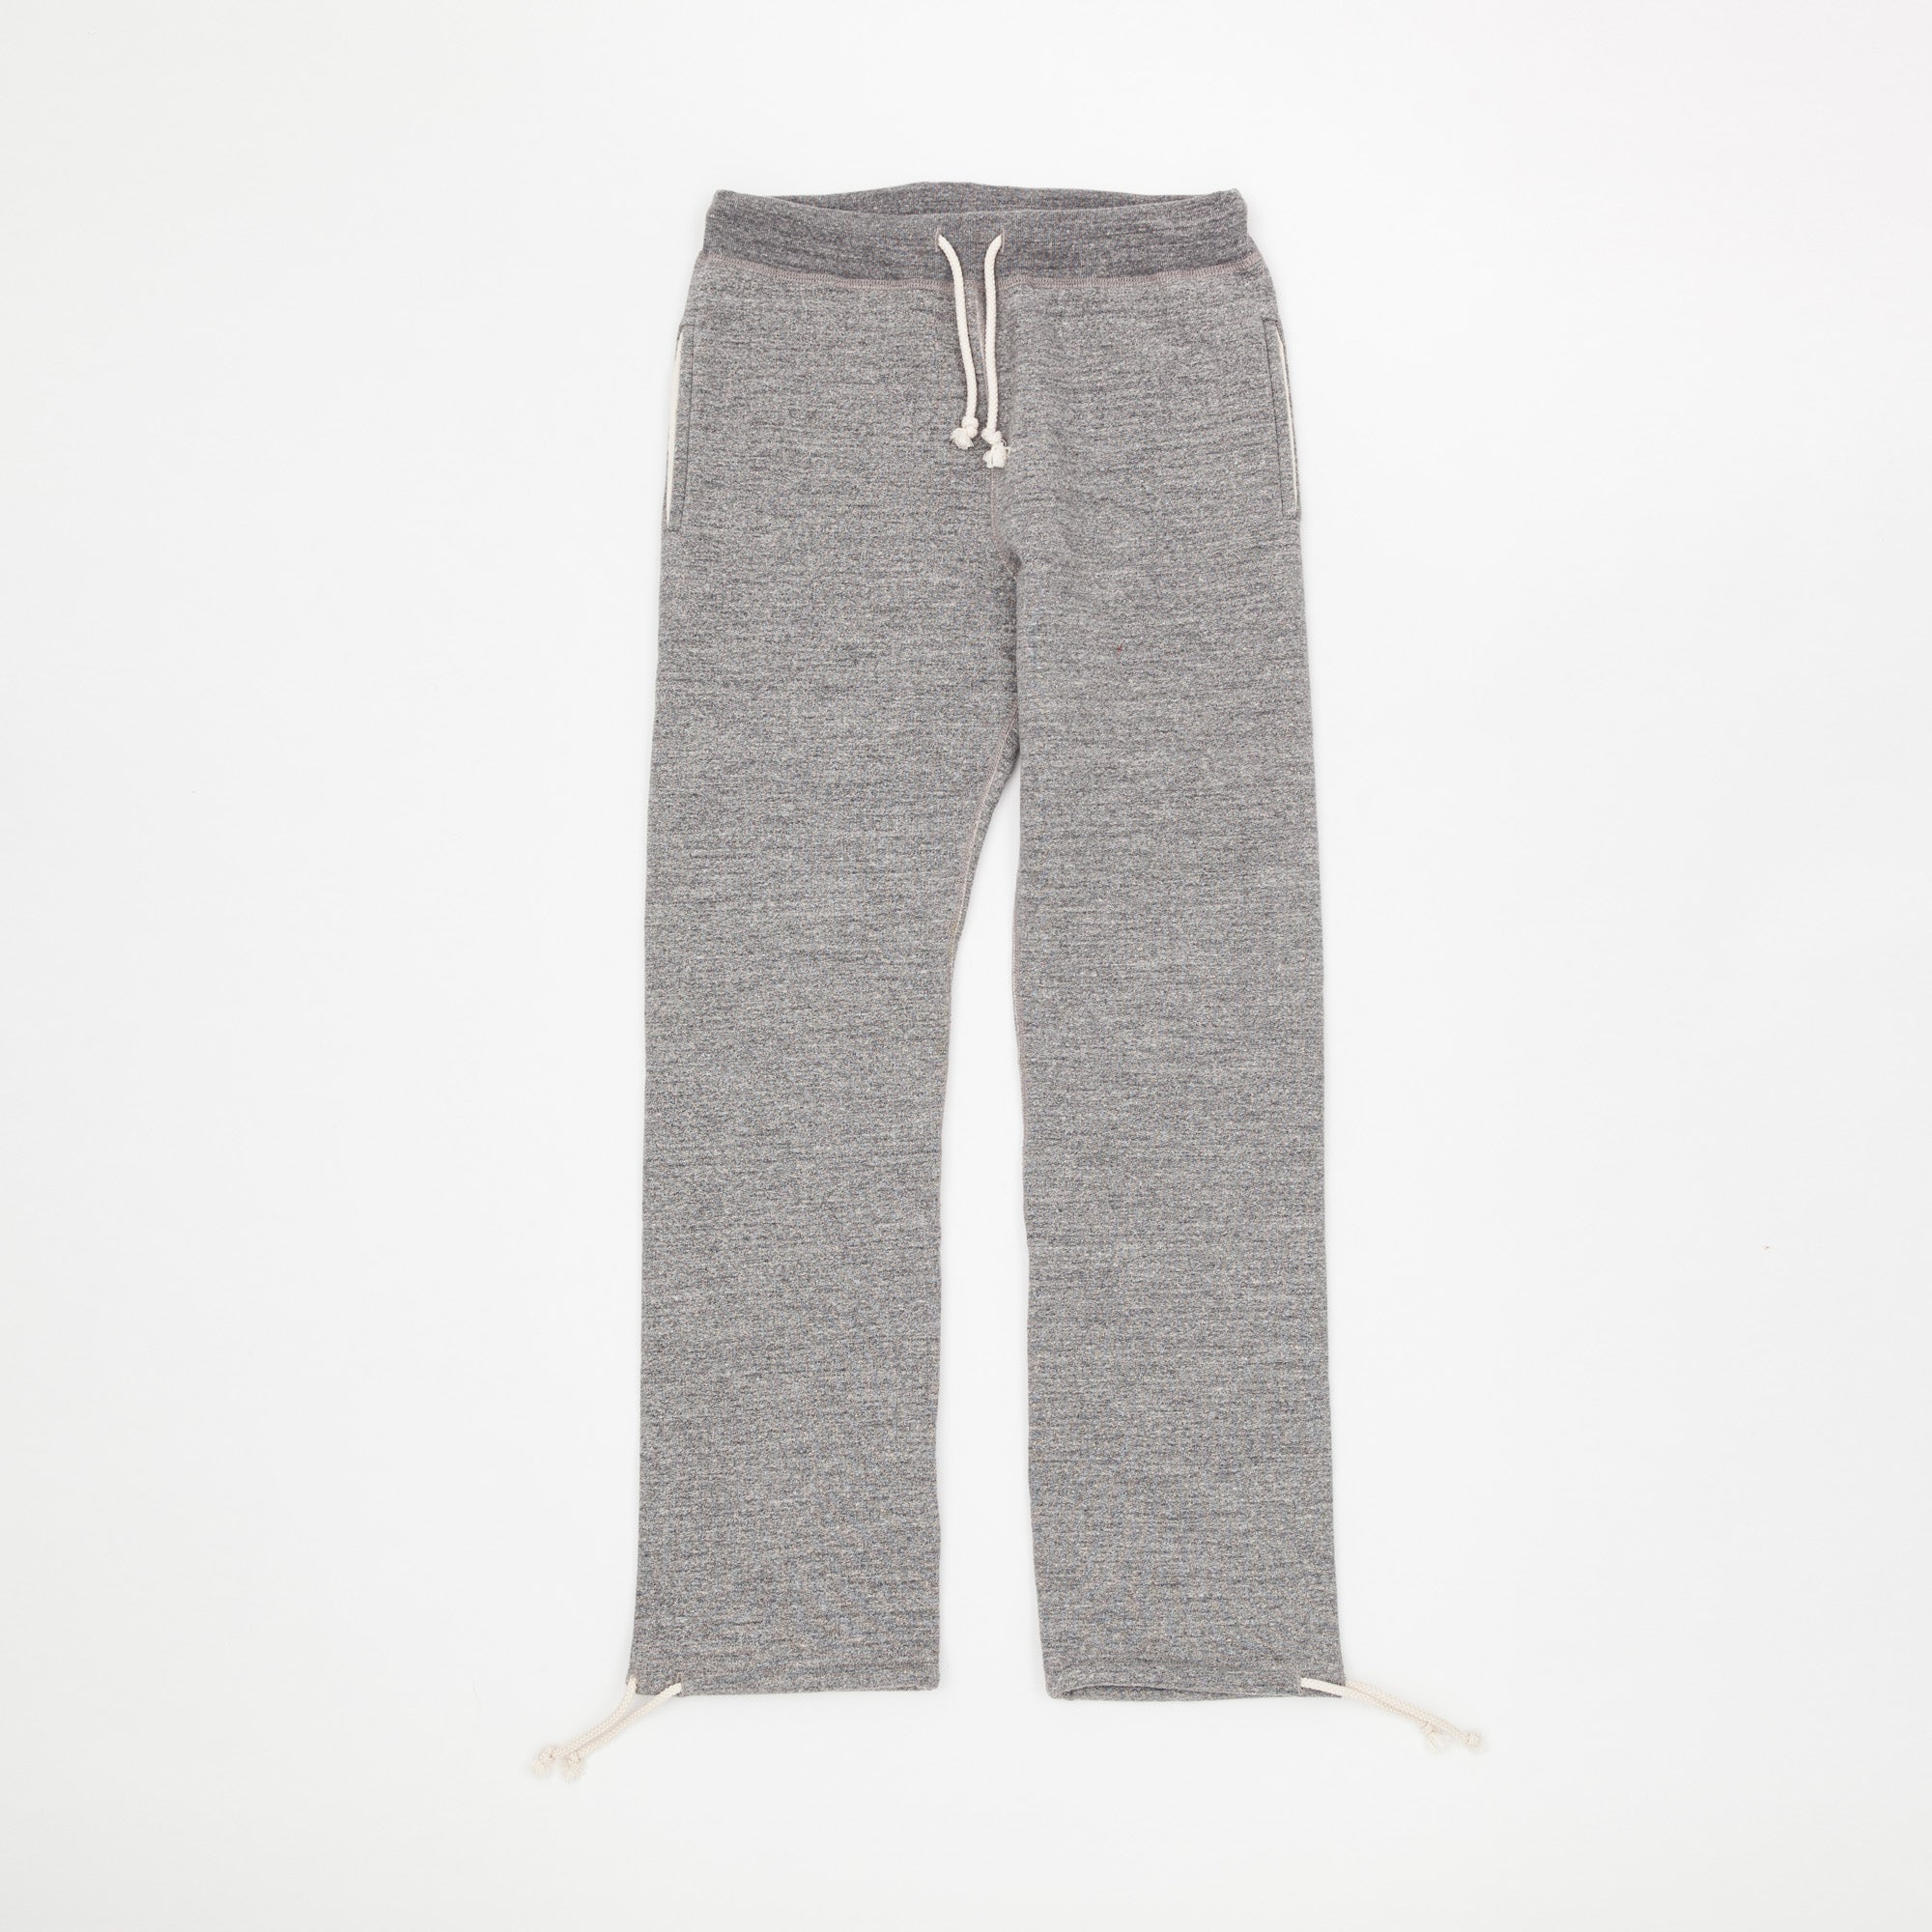 Joe McCoy Ball Park Sweatpants